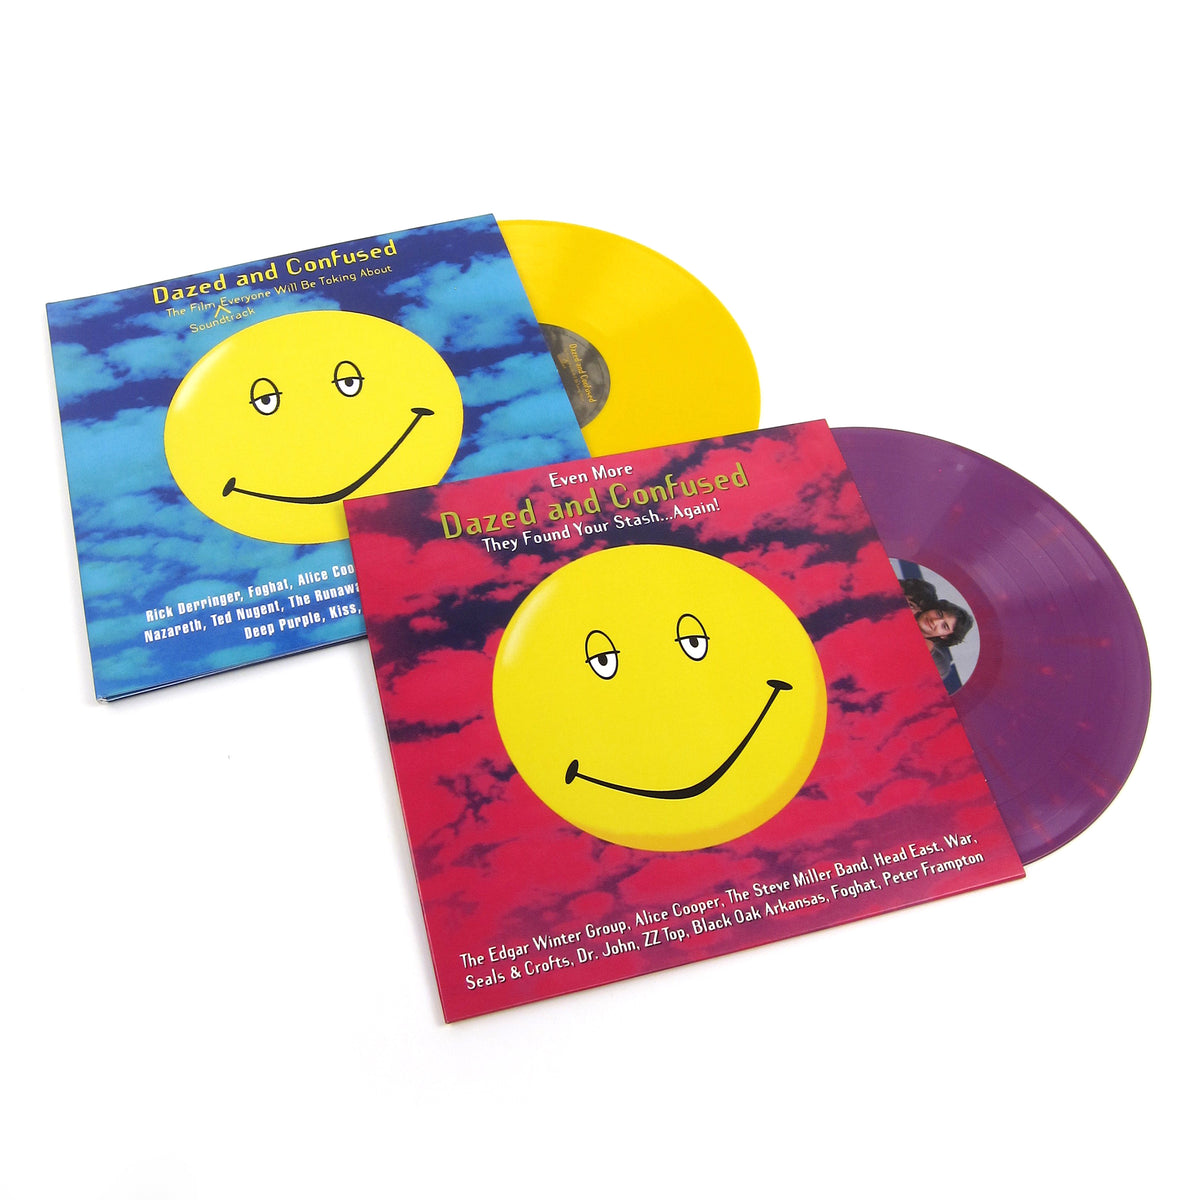 Dazed and Confused: Colored Vinyl LP Album Pack (Dazed And Confused, Even More)